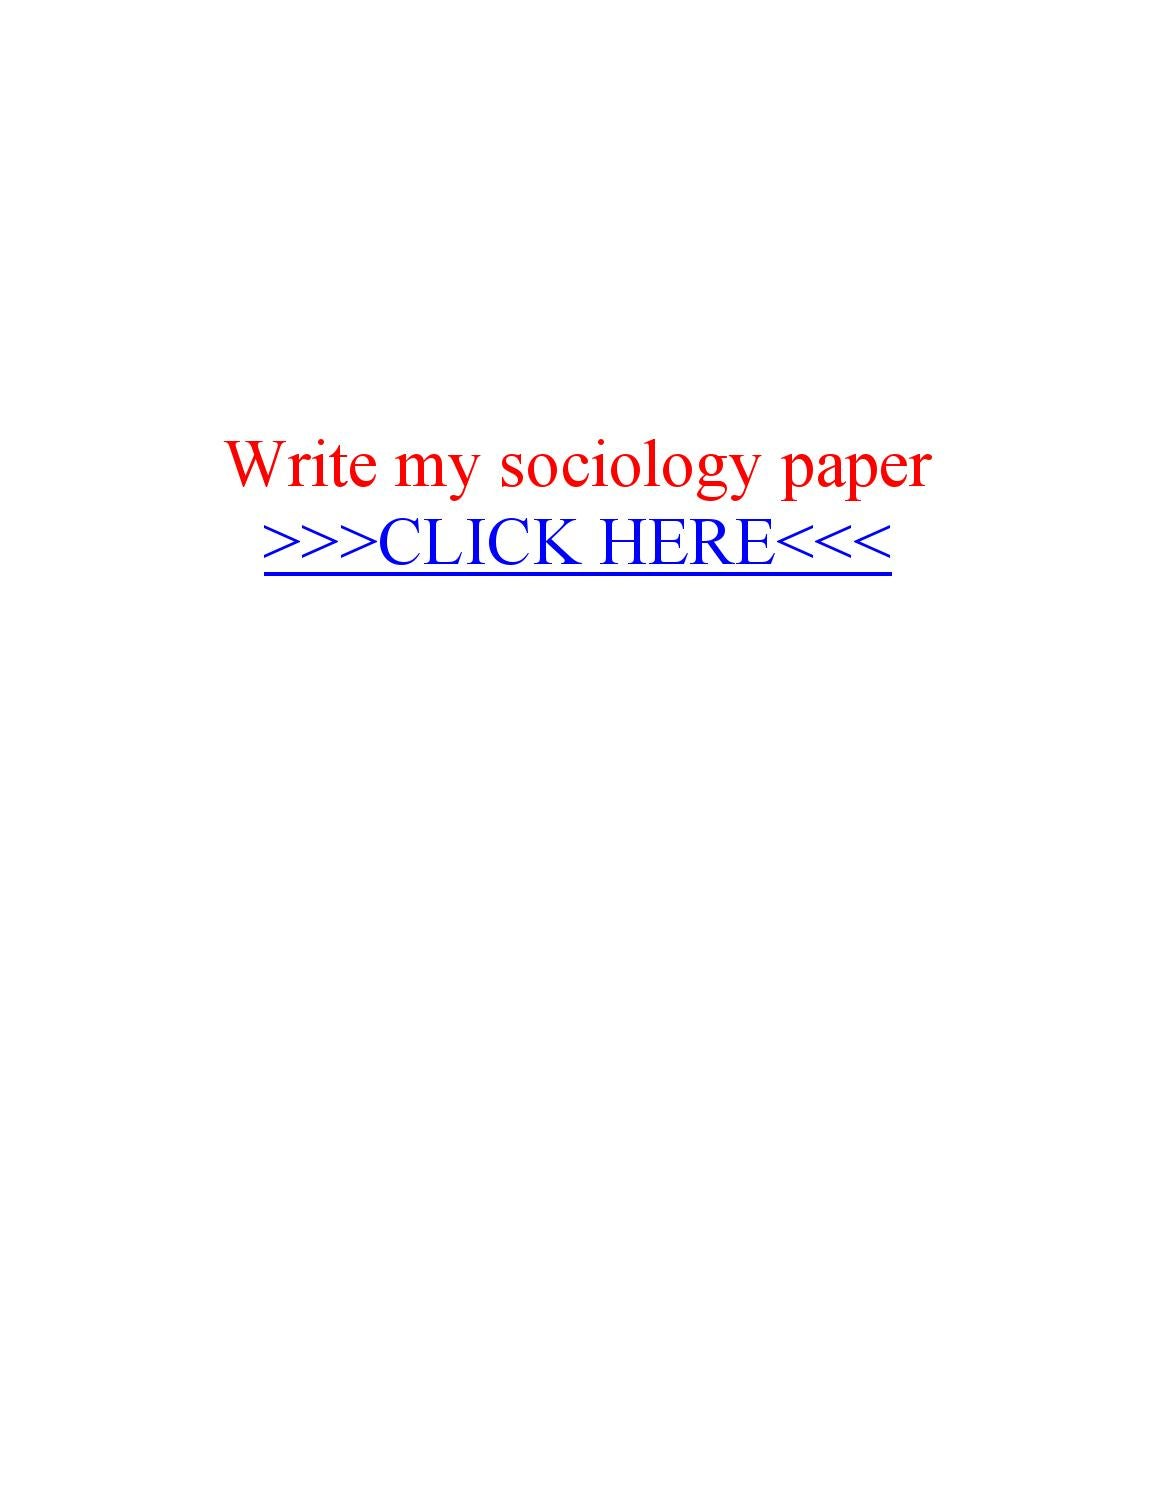 sociology a synthesis of its development essay Read this essay on sociology and nursing come browse our large digital warehouse of free sample essays  sociology is the scientific study of human society[1] and its origins, development, organizations, and institutions[2]  relevant data extraction and a narrative synthesis of findings results ten measures fitting inclusion criteria.